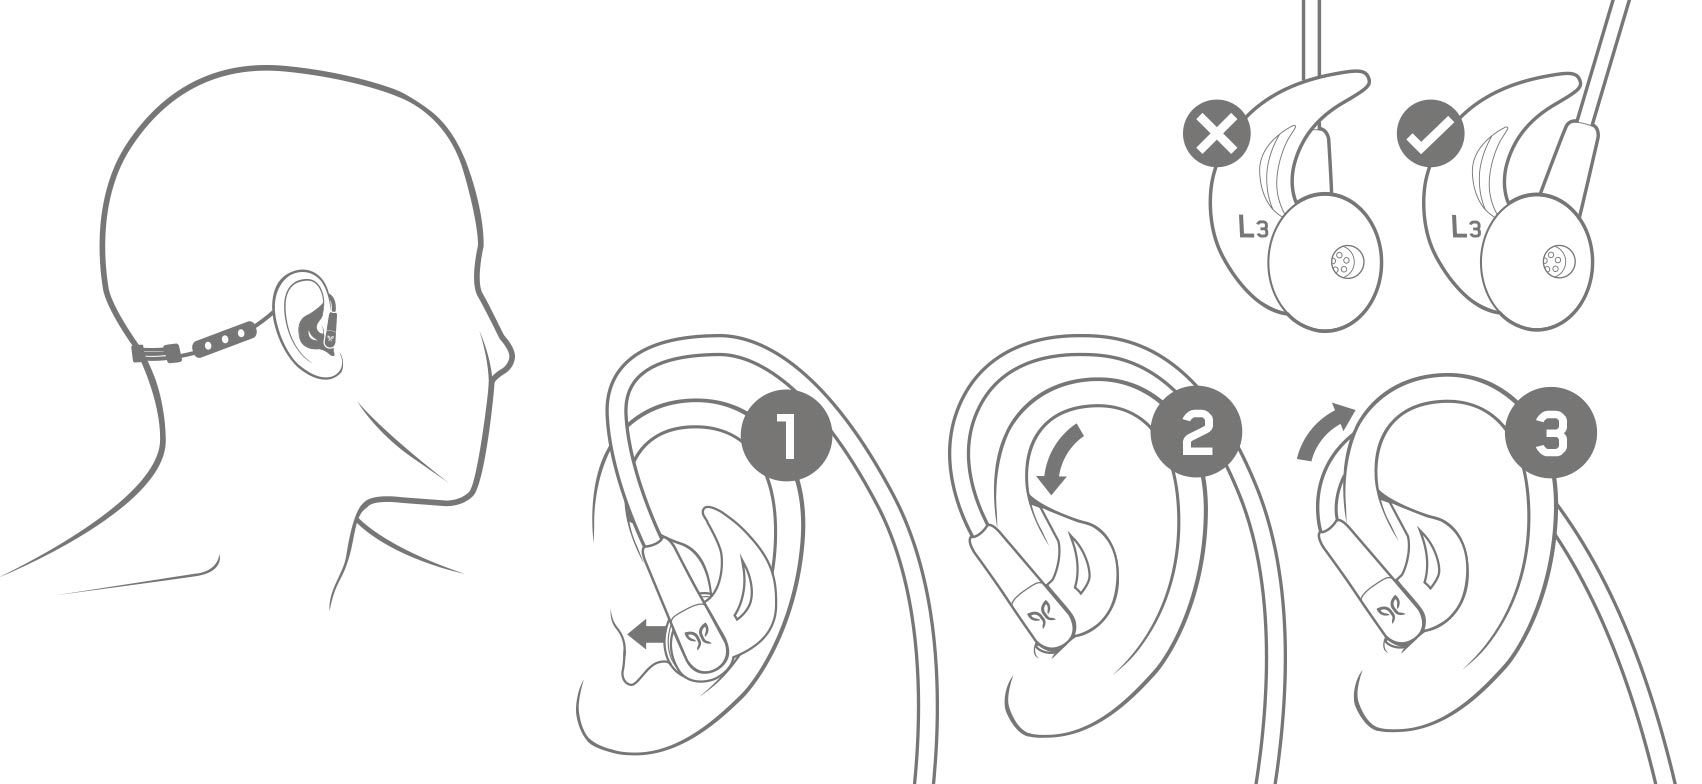 Frequently Ask Questions Headphone Wire Diagram Additionally Iphone Charger Cable Cord As Well Adjust The Speedfit Clips To Tighten Cables And Secure It Against Back Of Your Neck This Ensures Doesnt Bounce When Youre Active